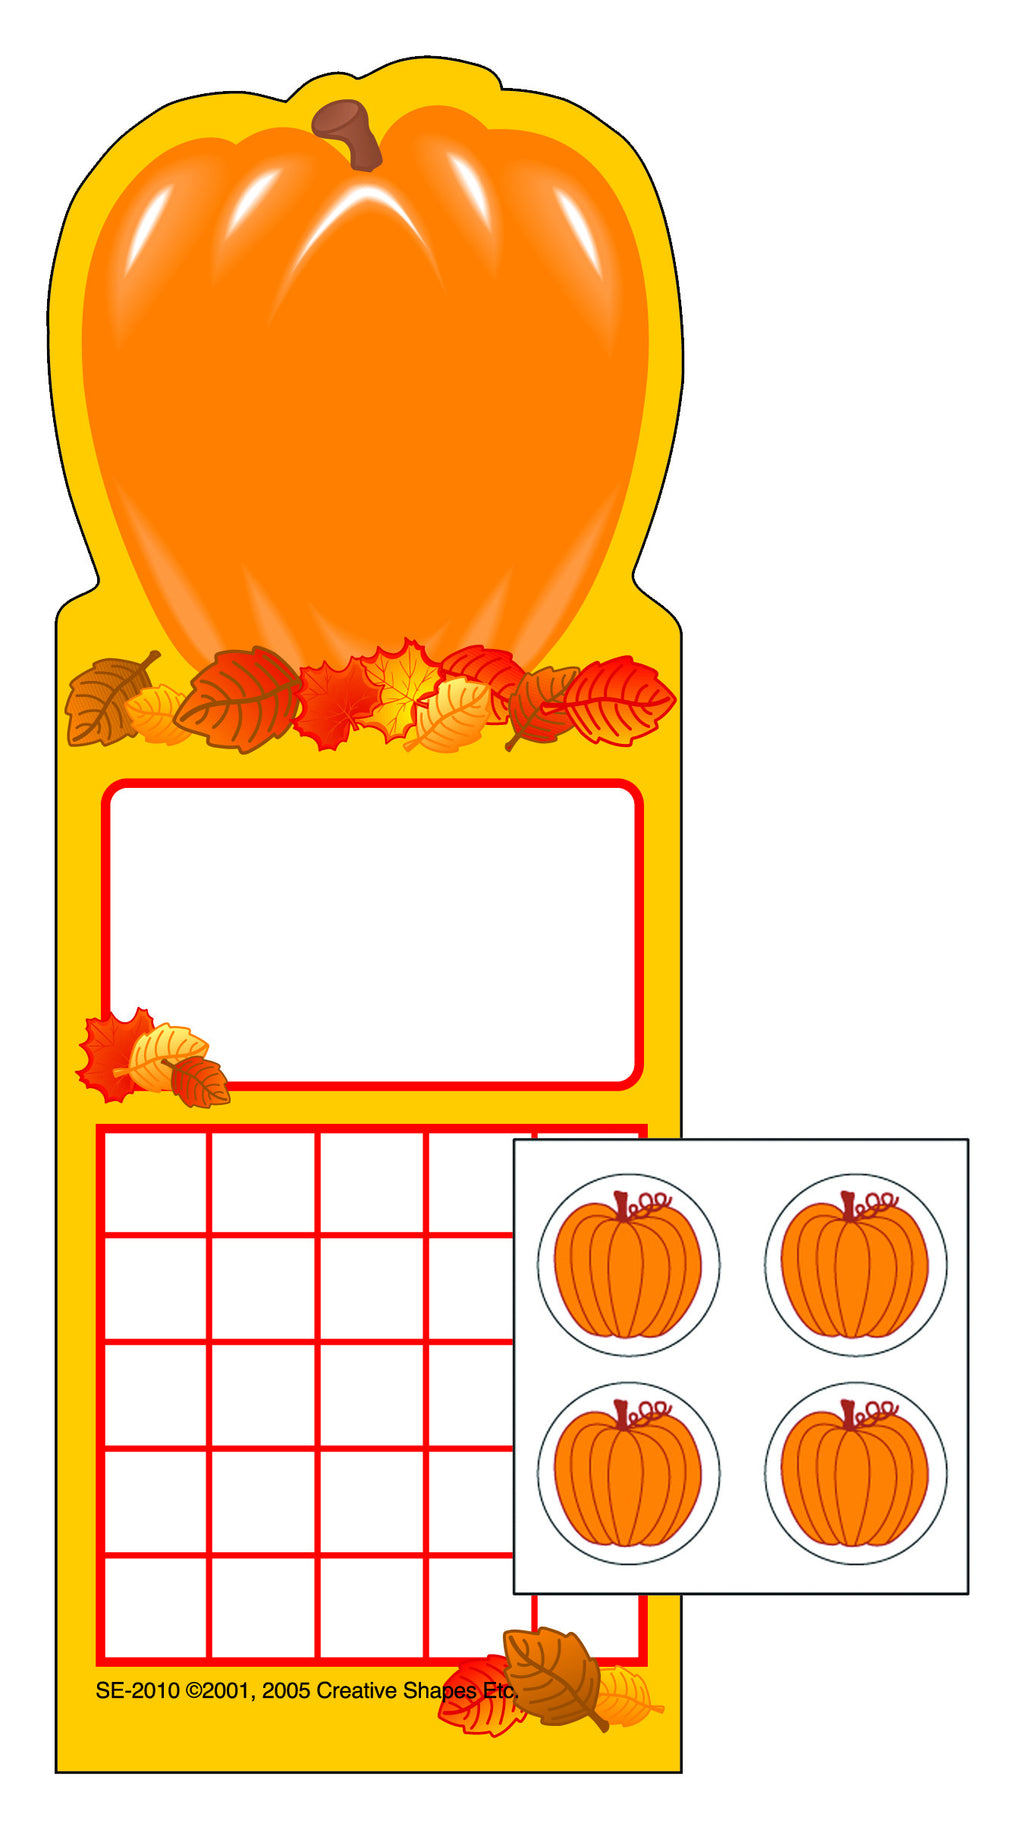 Incentive Sticker Set - Pumpkin - Creative Shapes Etc.